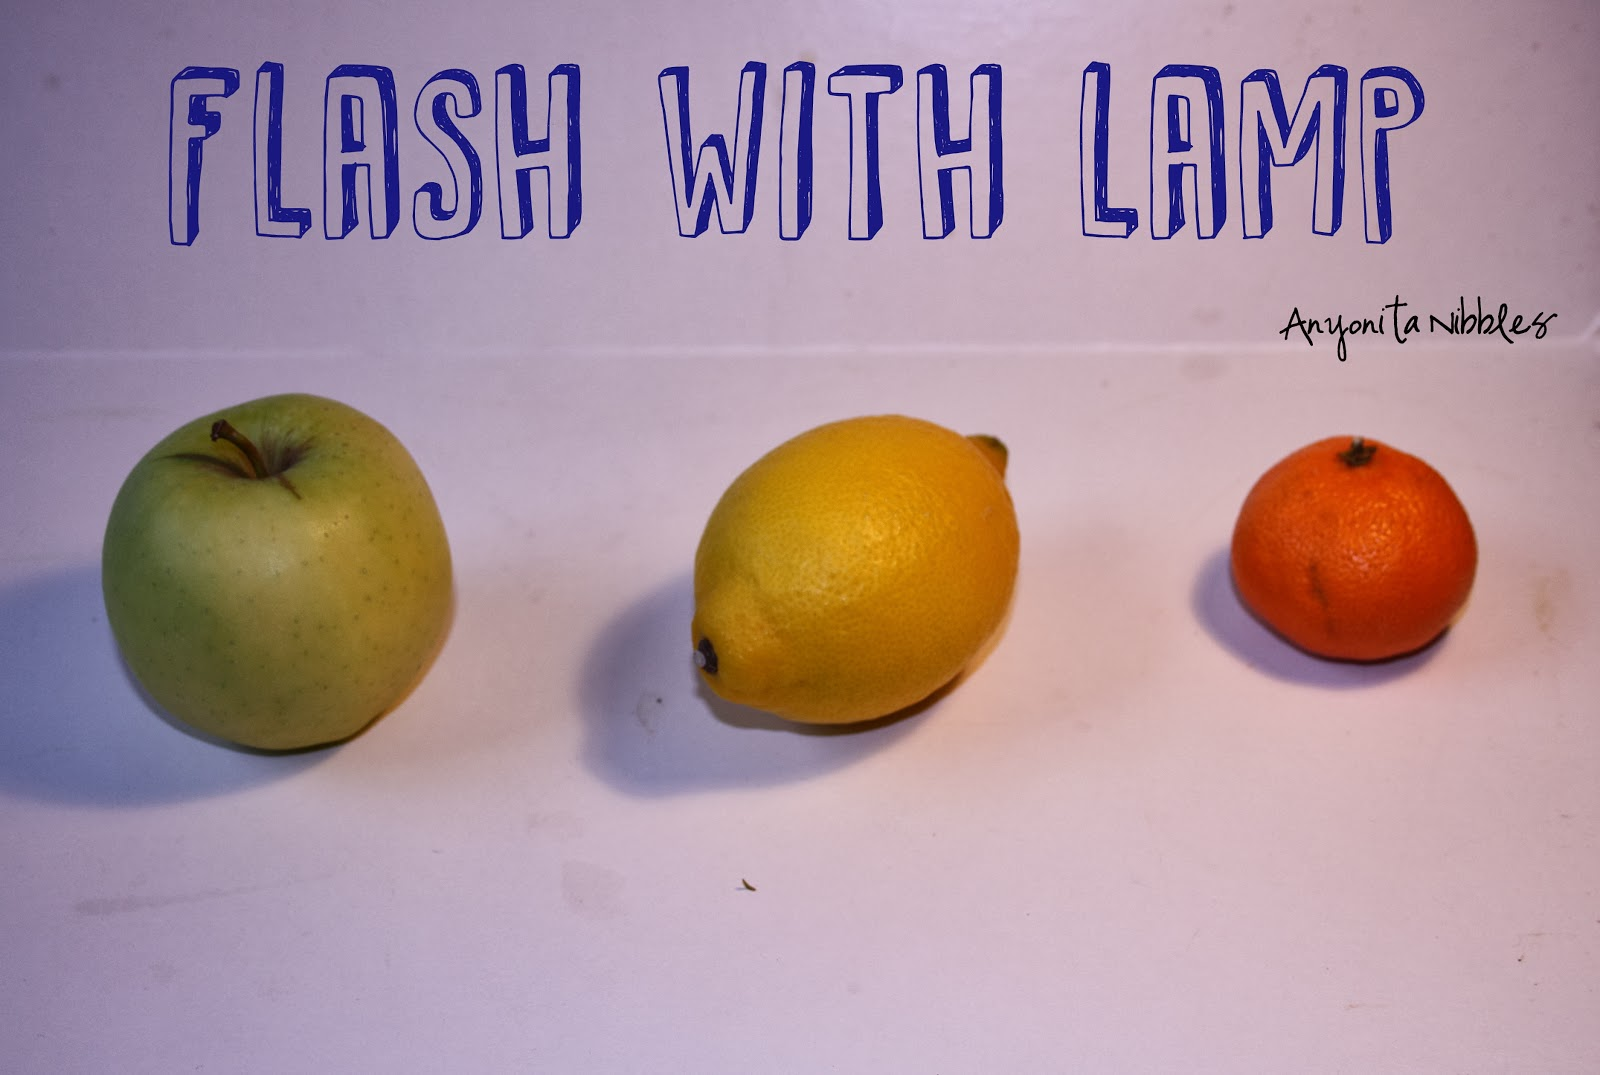 Avoid using the flash with food photography